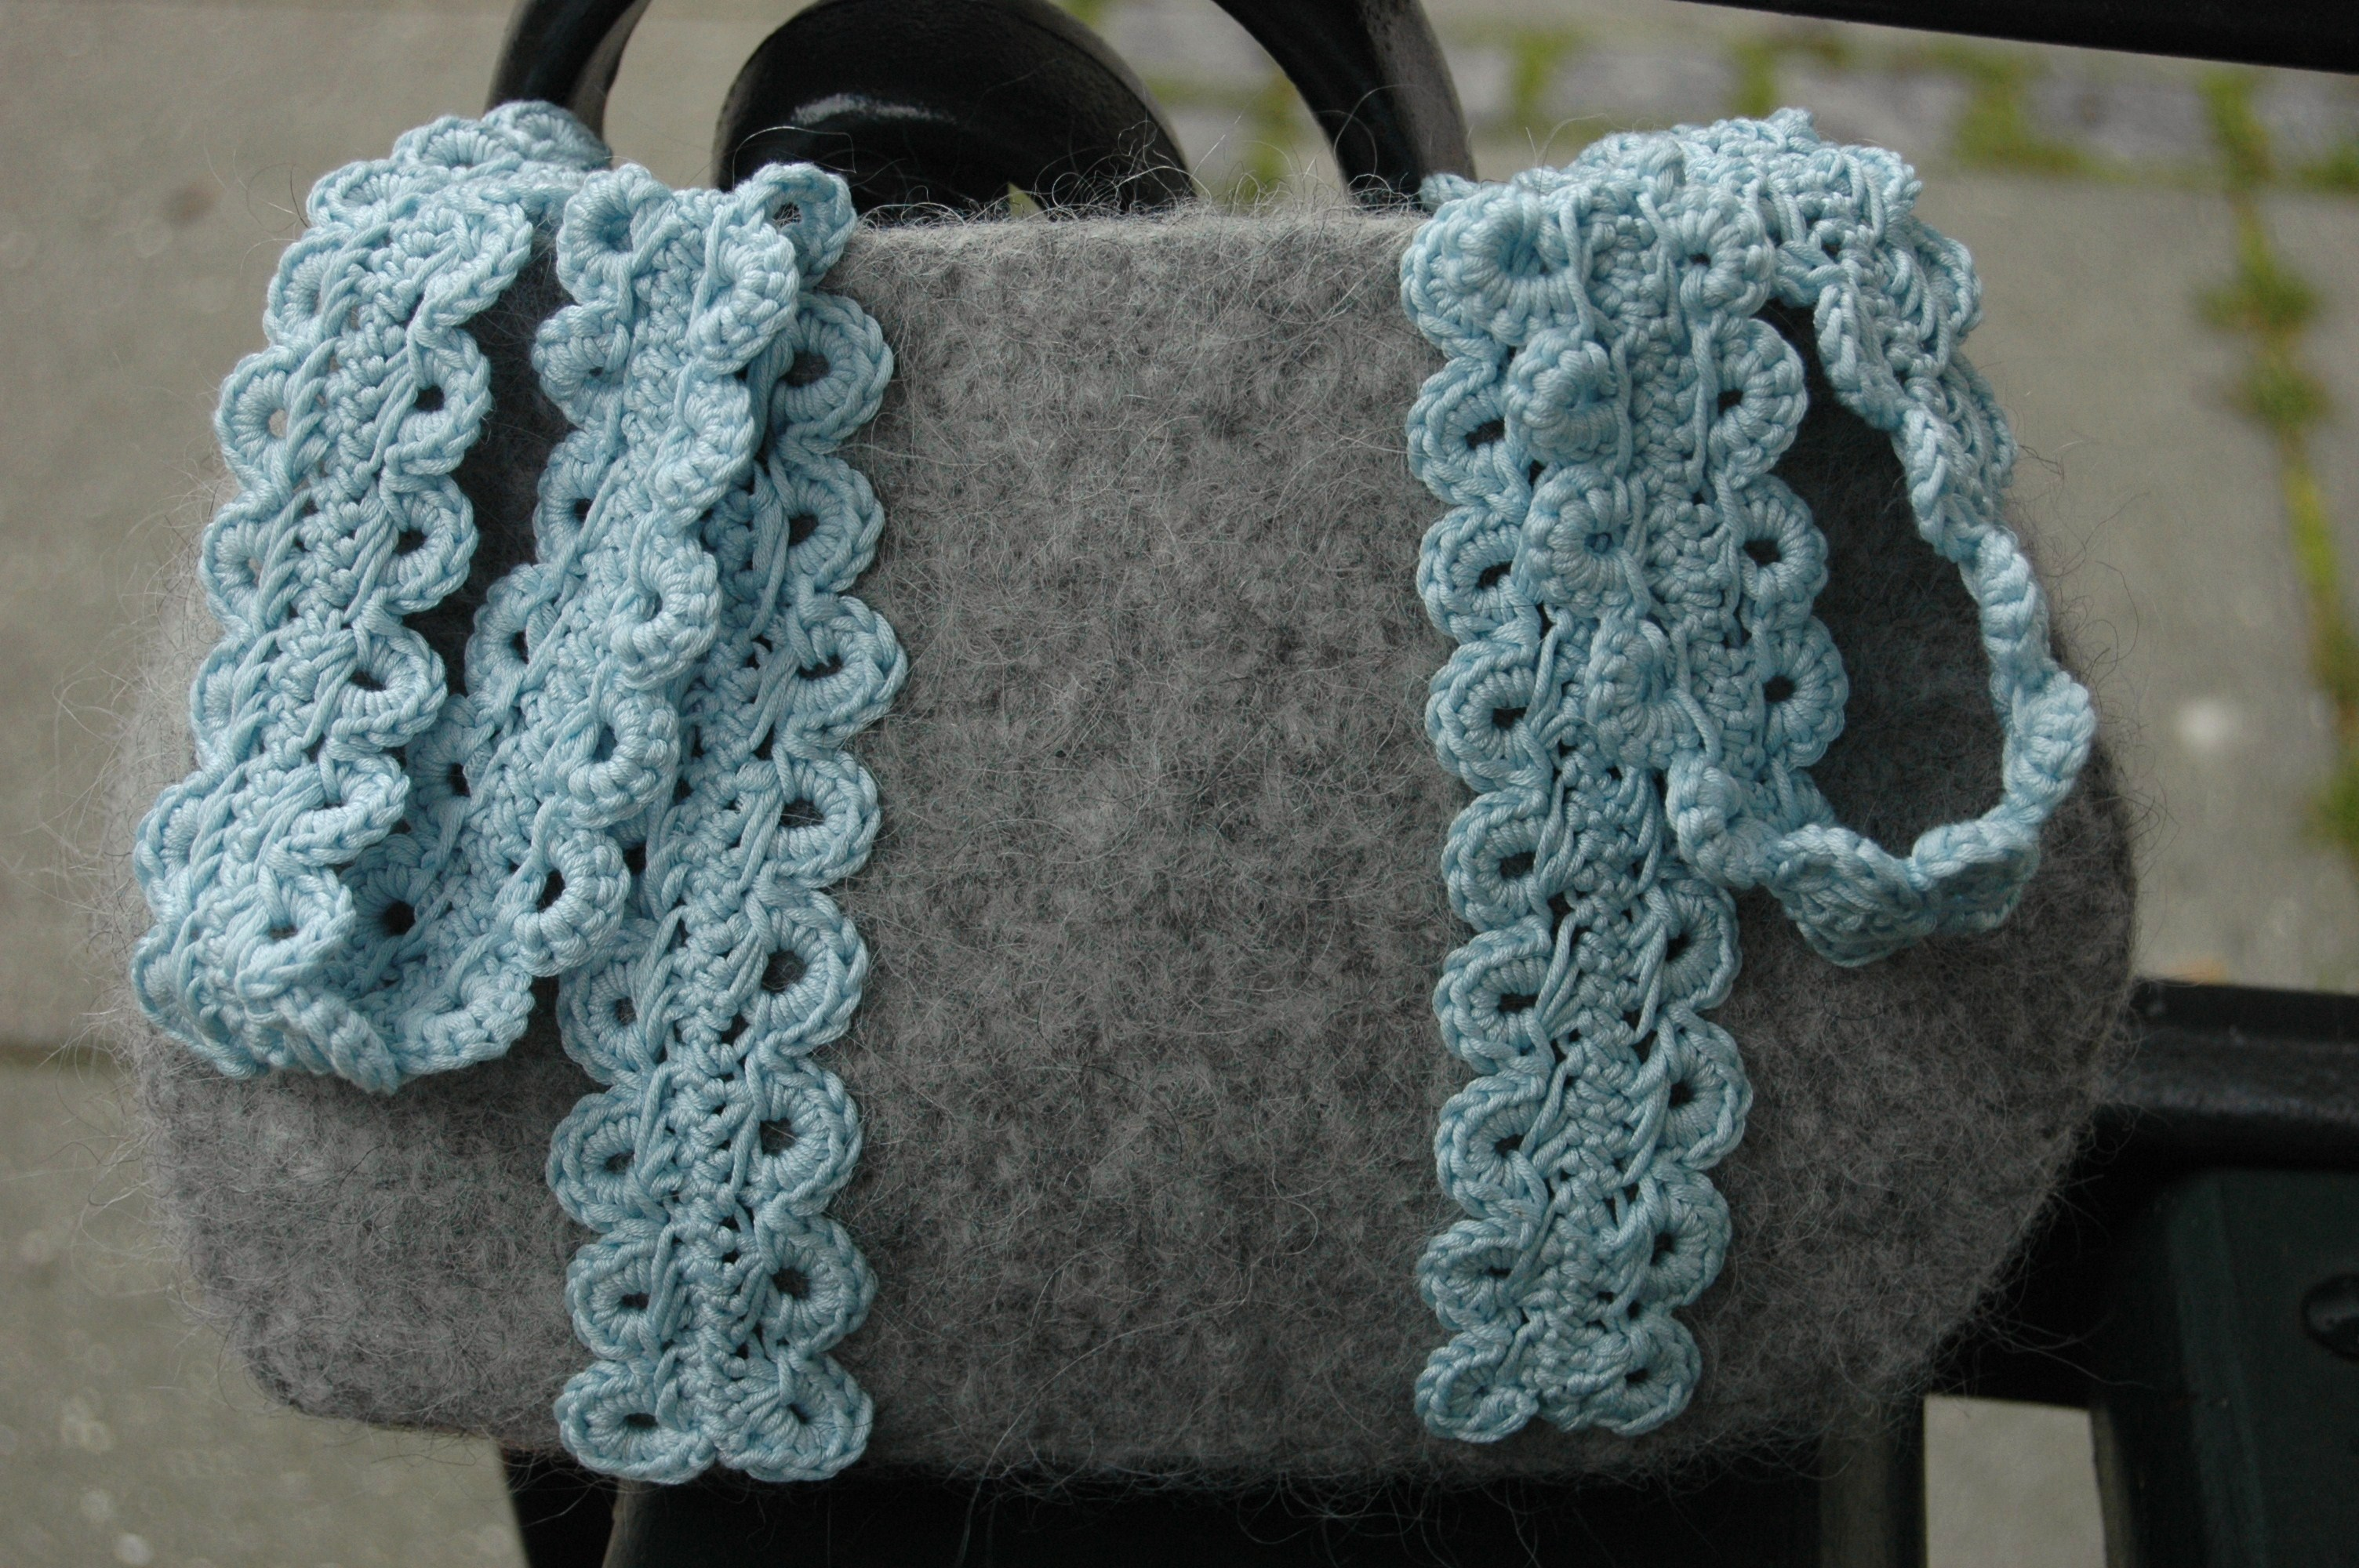 Crocheted Handbag : FREE CROCHETED PURSE PATTERNS Crochet For Beginners